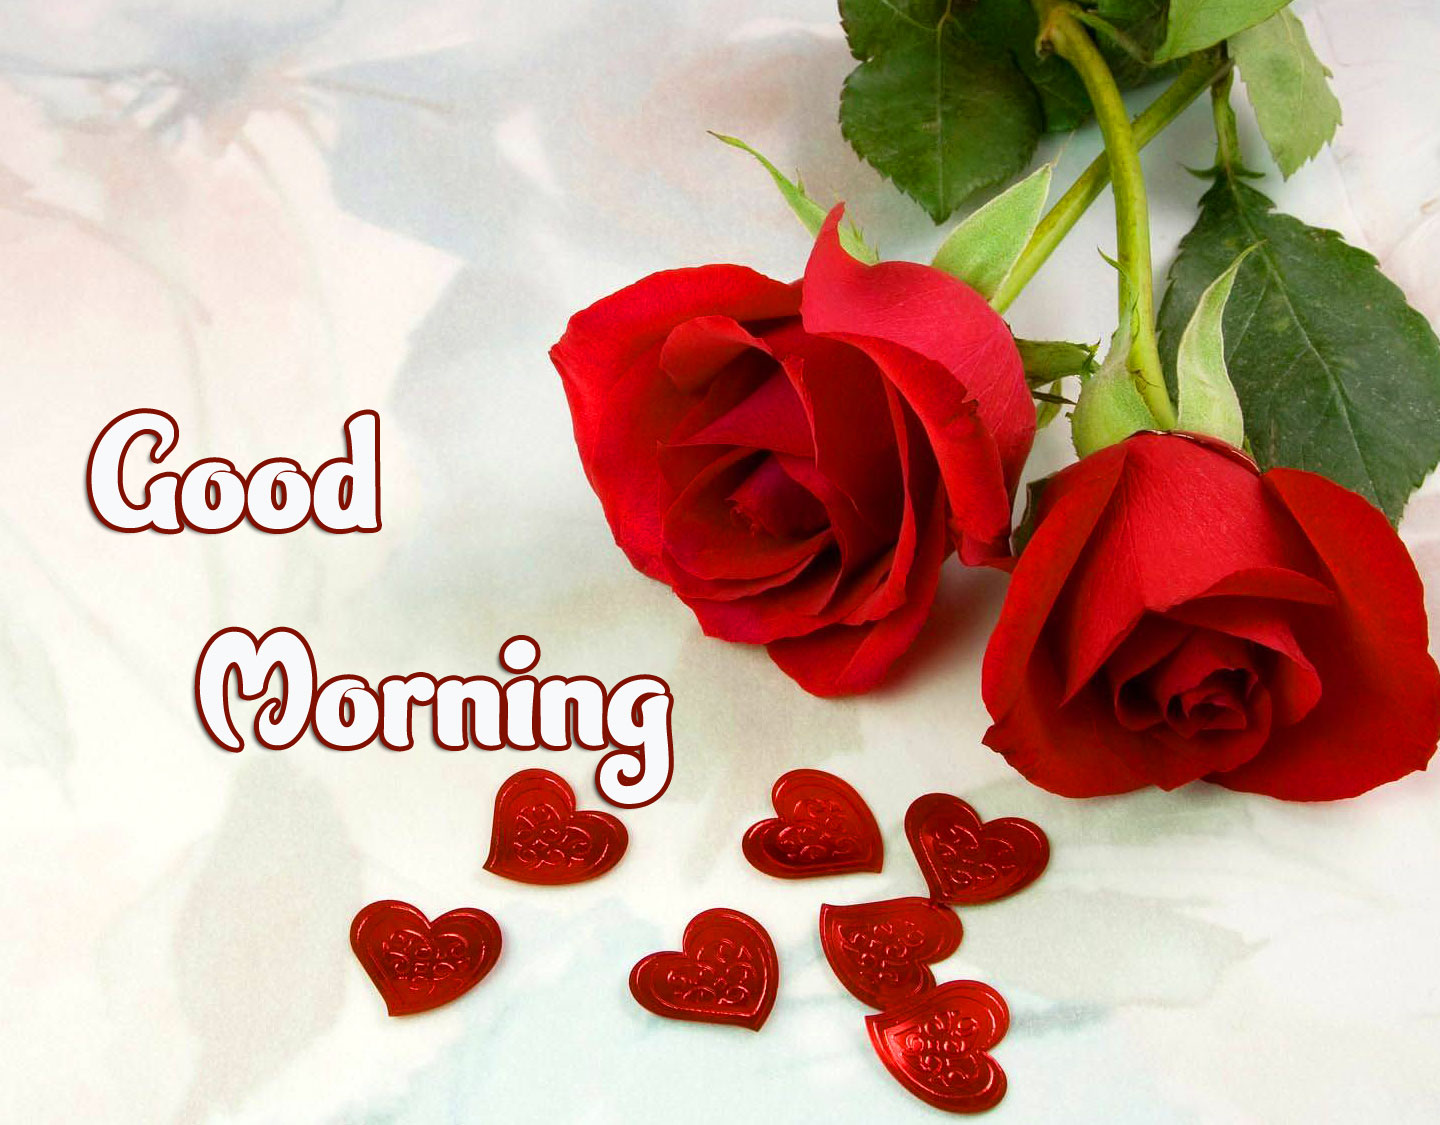 Good Morning Images Pics photo Download Free